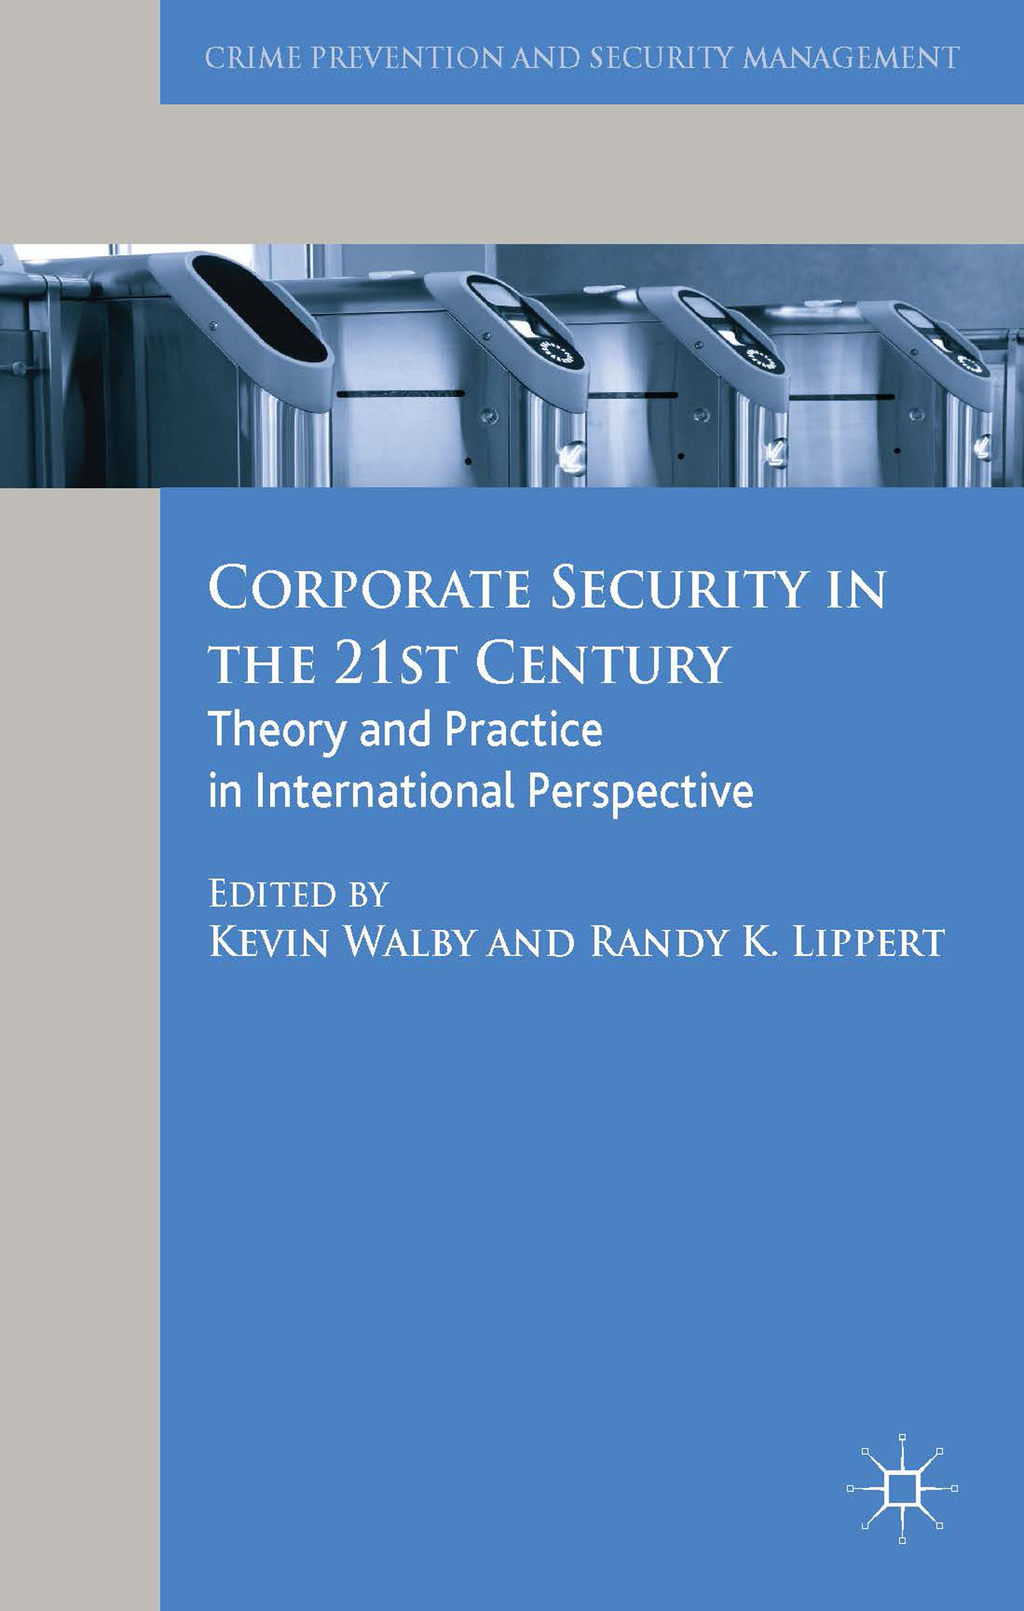 Corporate Security in the 21st Century Theory and Practice in International Perspective